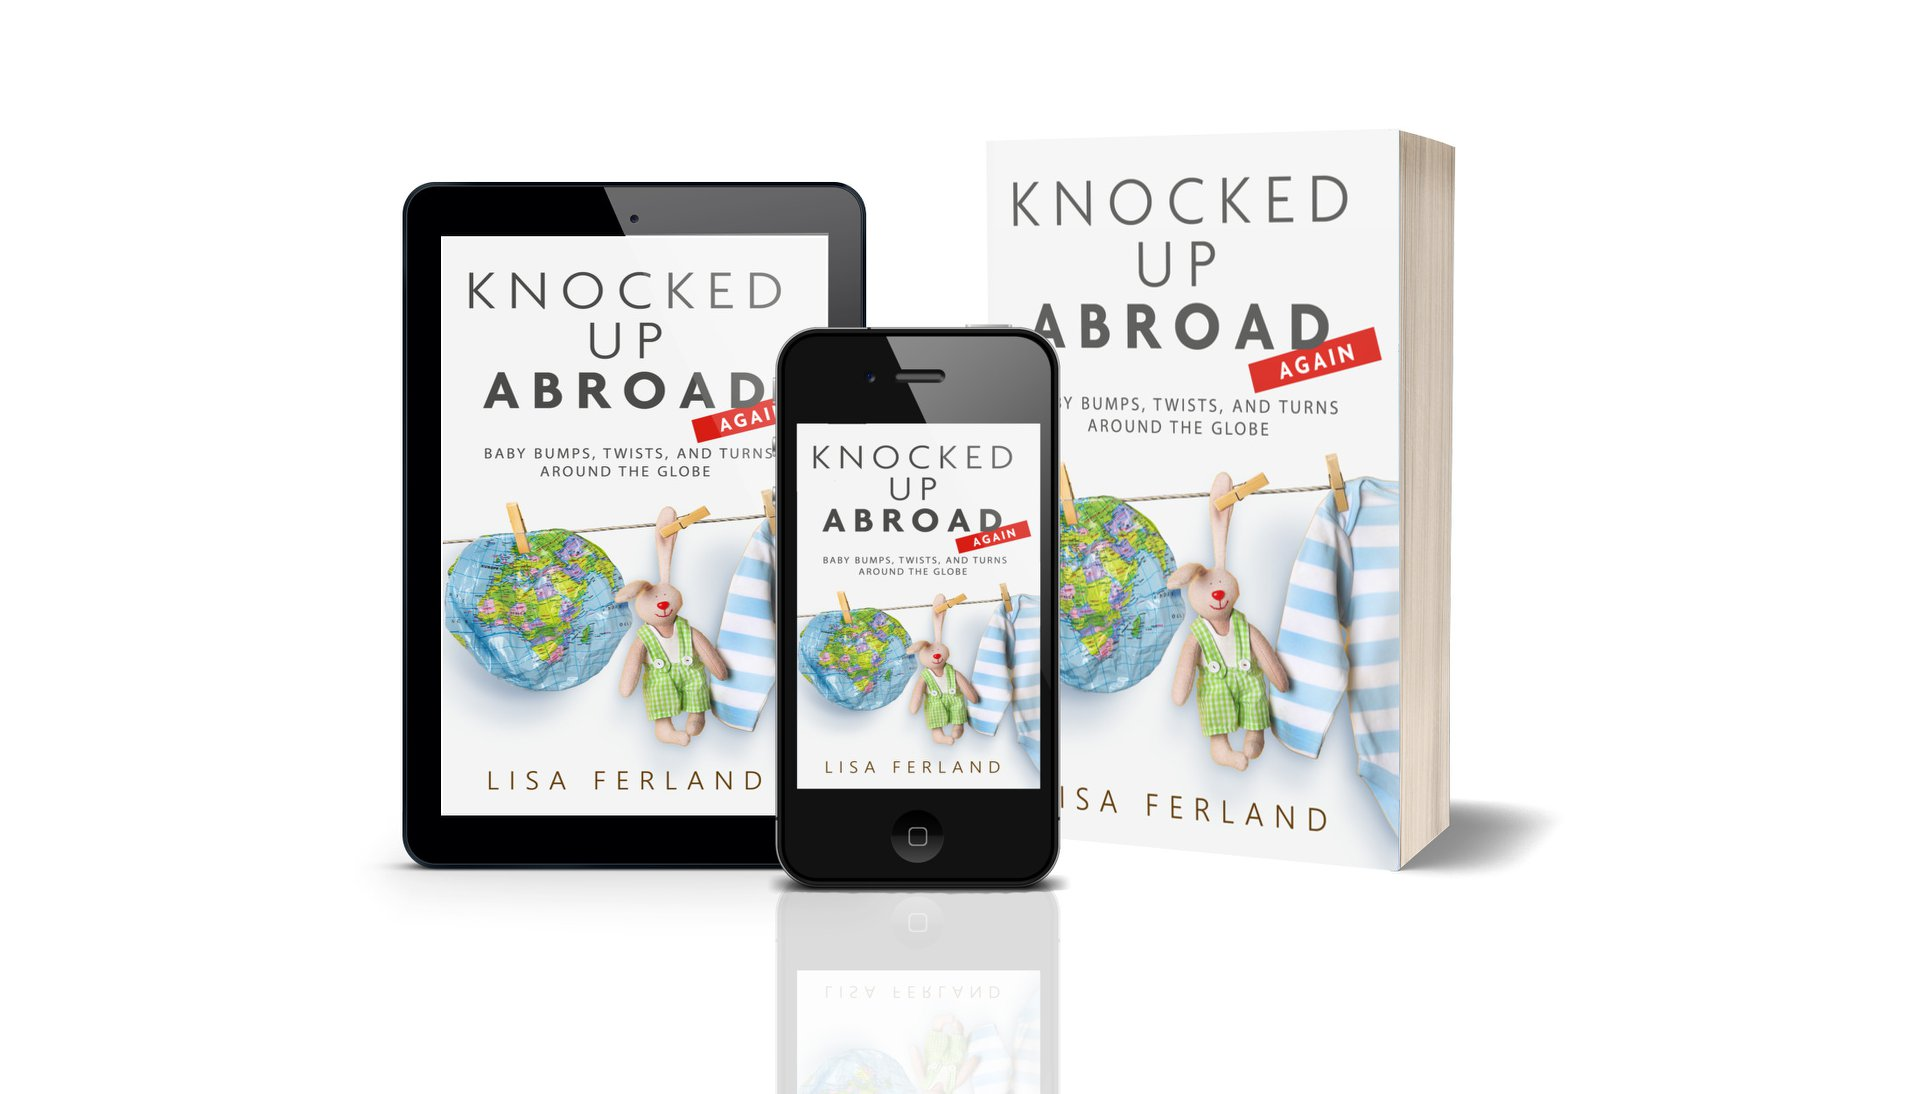 knocked up abroad again covers